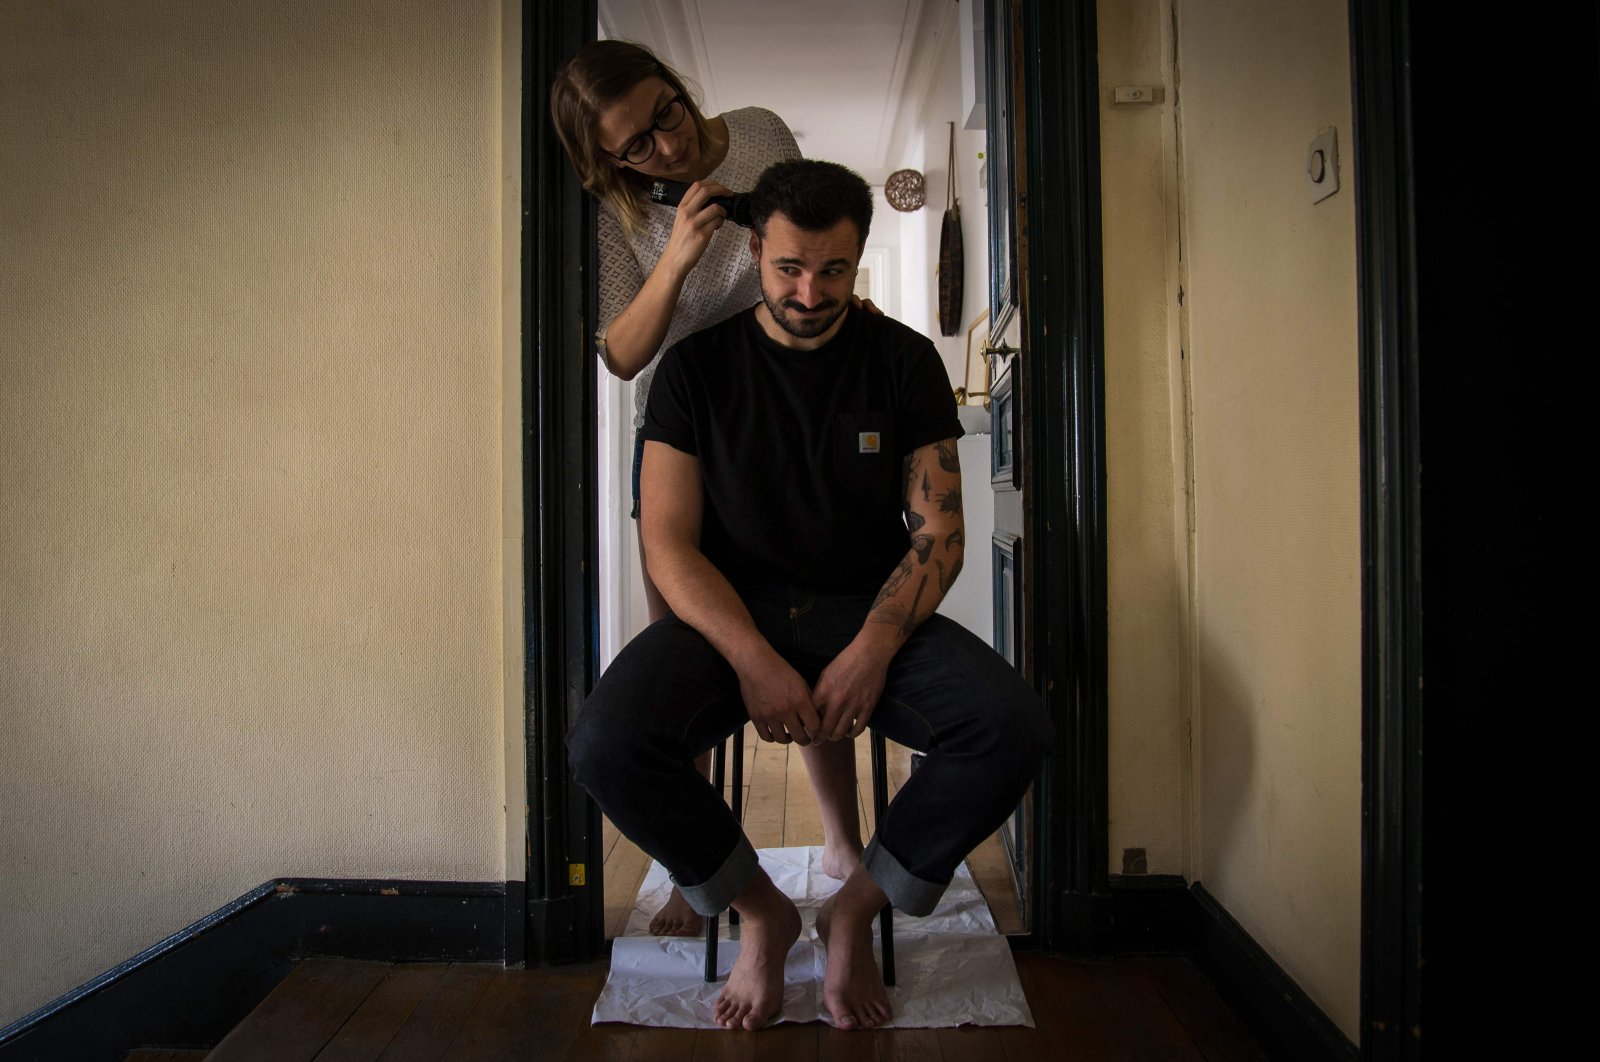 Lucie cuts her companion Pierre's hair at home as coiffeurs stay closed on the 25th day of a strict lockdown aimed at curbing the spread of COVID-19, Paris, April 10, 2020. (Photo by Elena FUSCO / AFP)